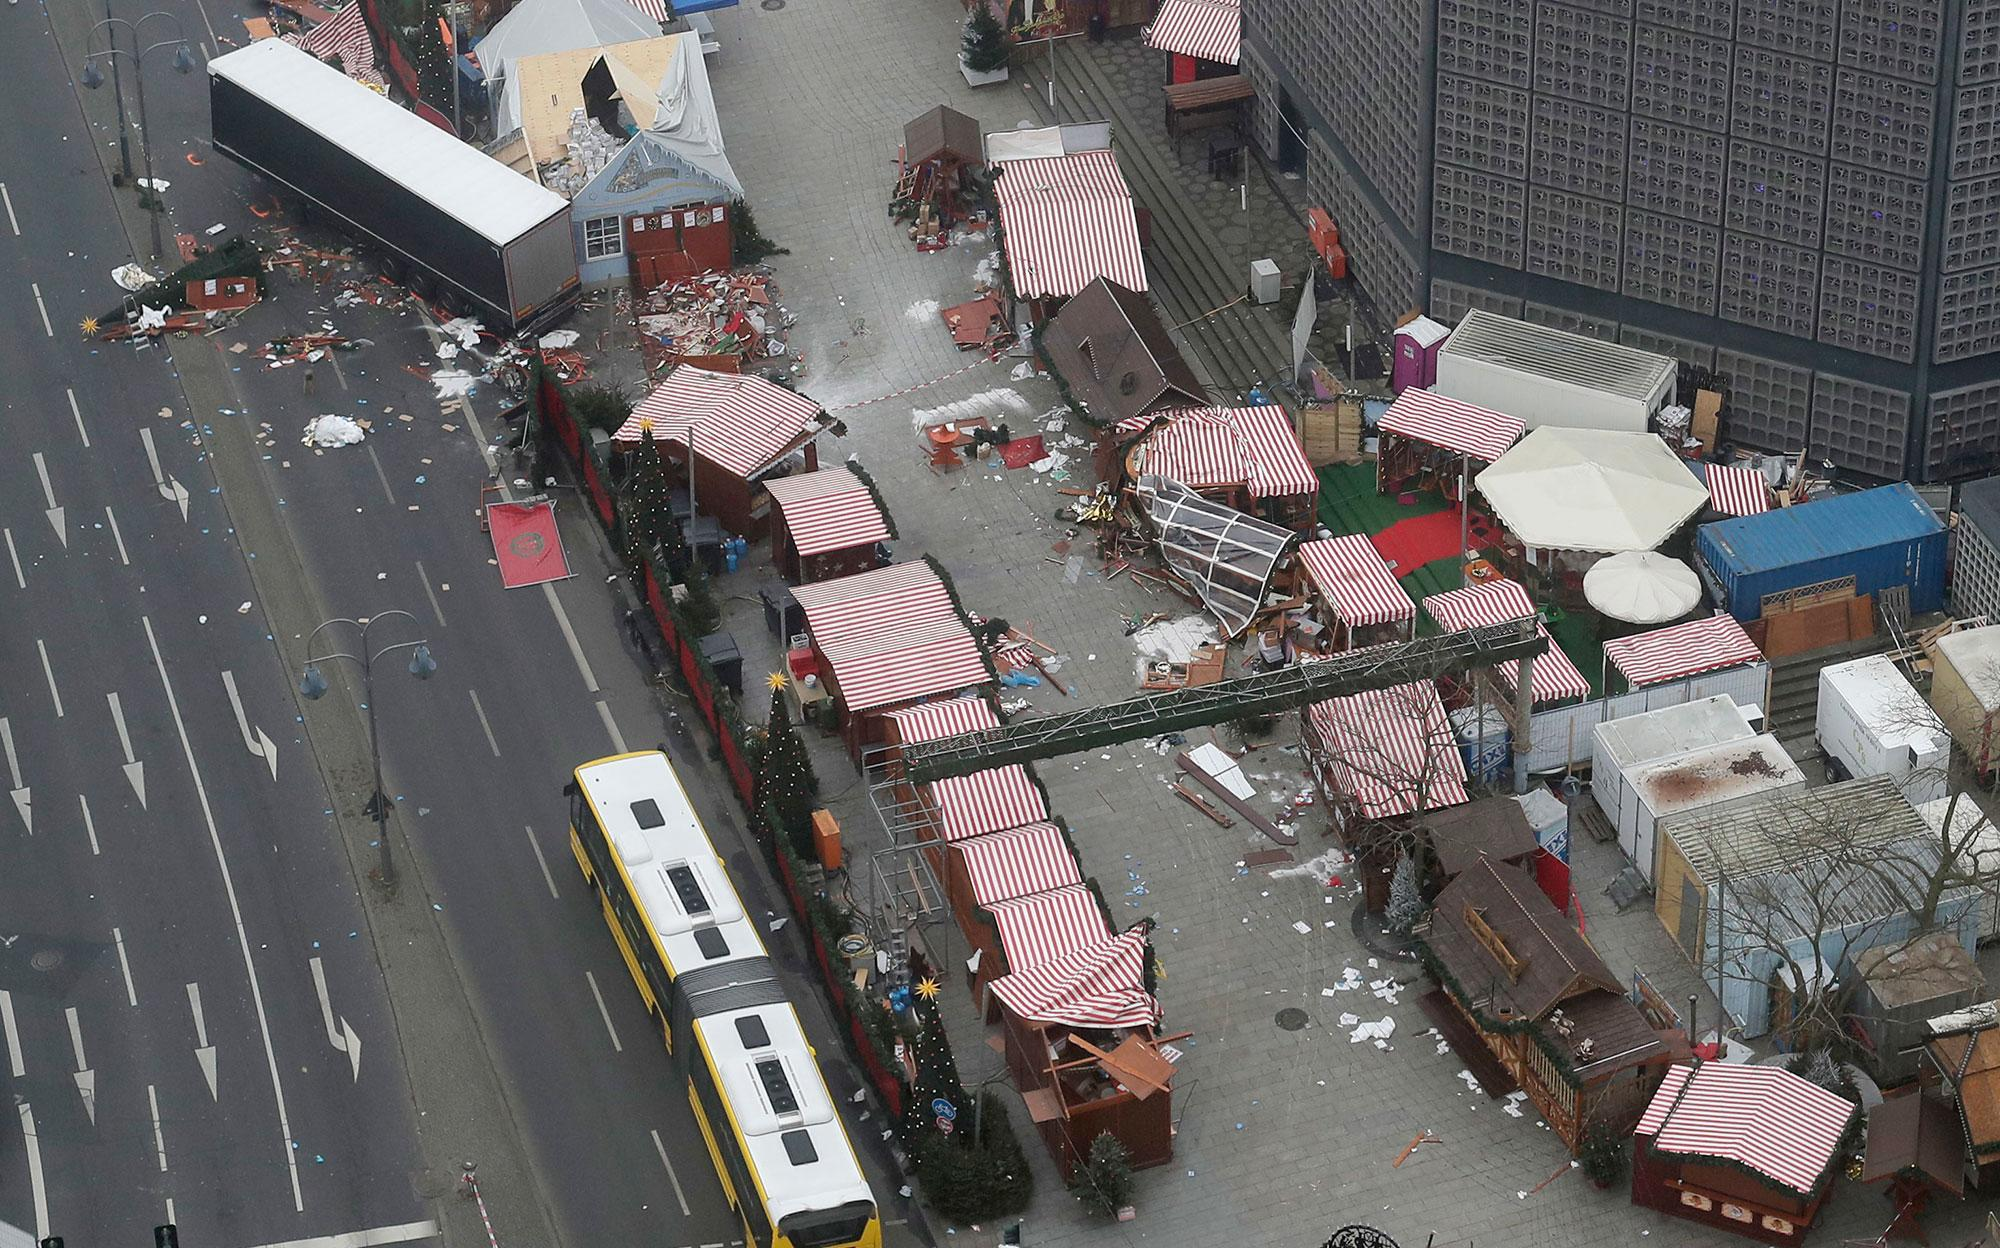 <p>The trailer of a truck stands beside destroyed Christmas market huts in Berlin, Germany, Tuesday, Dec. 20, 2016, the day after a truck ran into a crowded Christmas market and killed several people. (AP Photo/Markus Schreiber) </p>